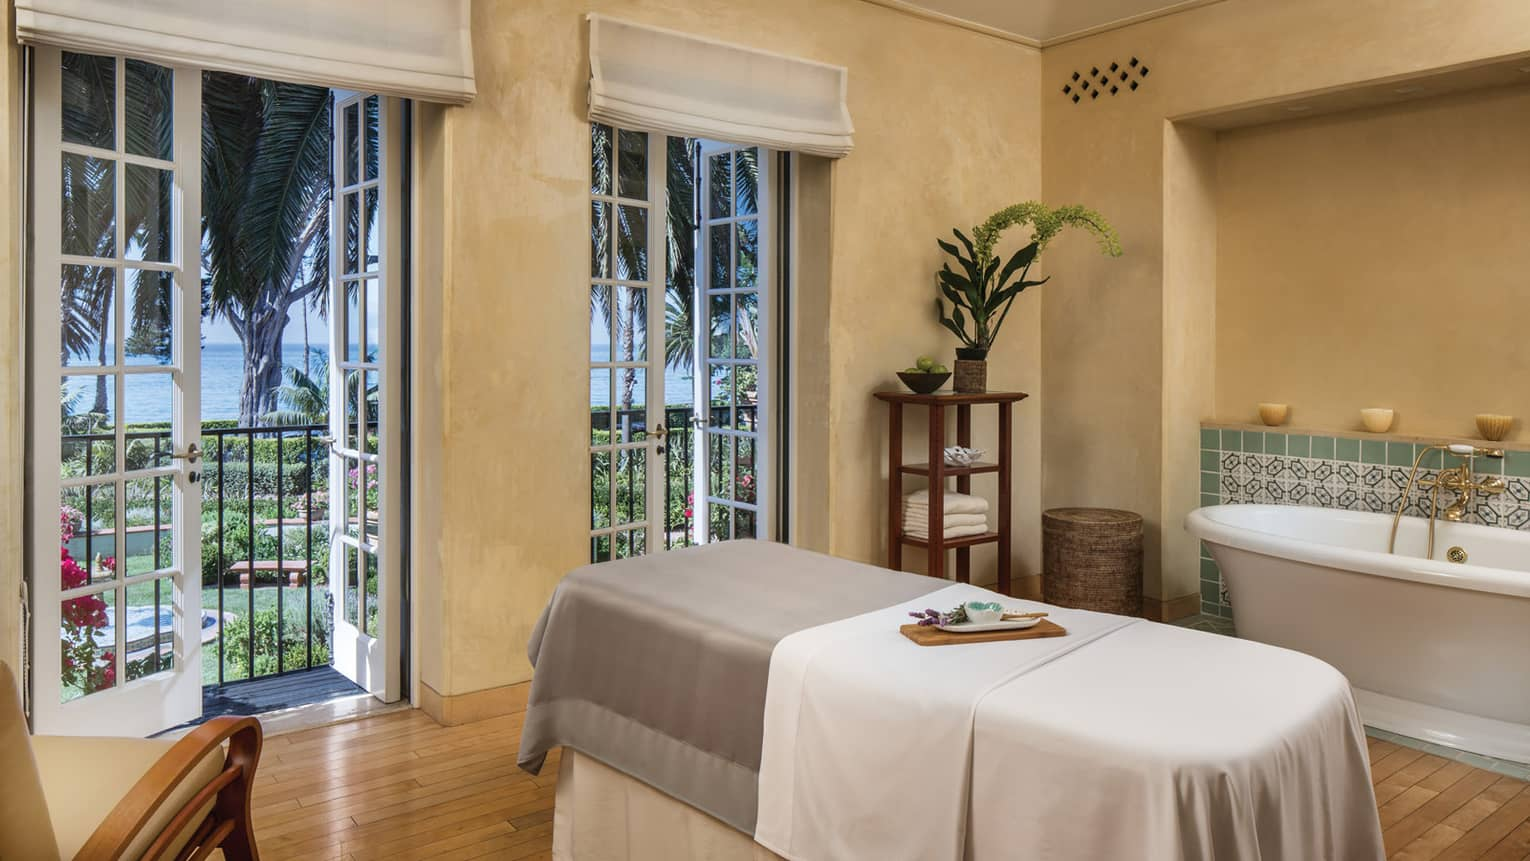 A spa treatment room with massage table, bath tub, wooden floors, French doors to a garden